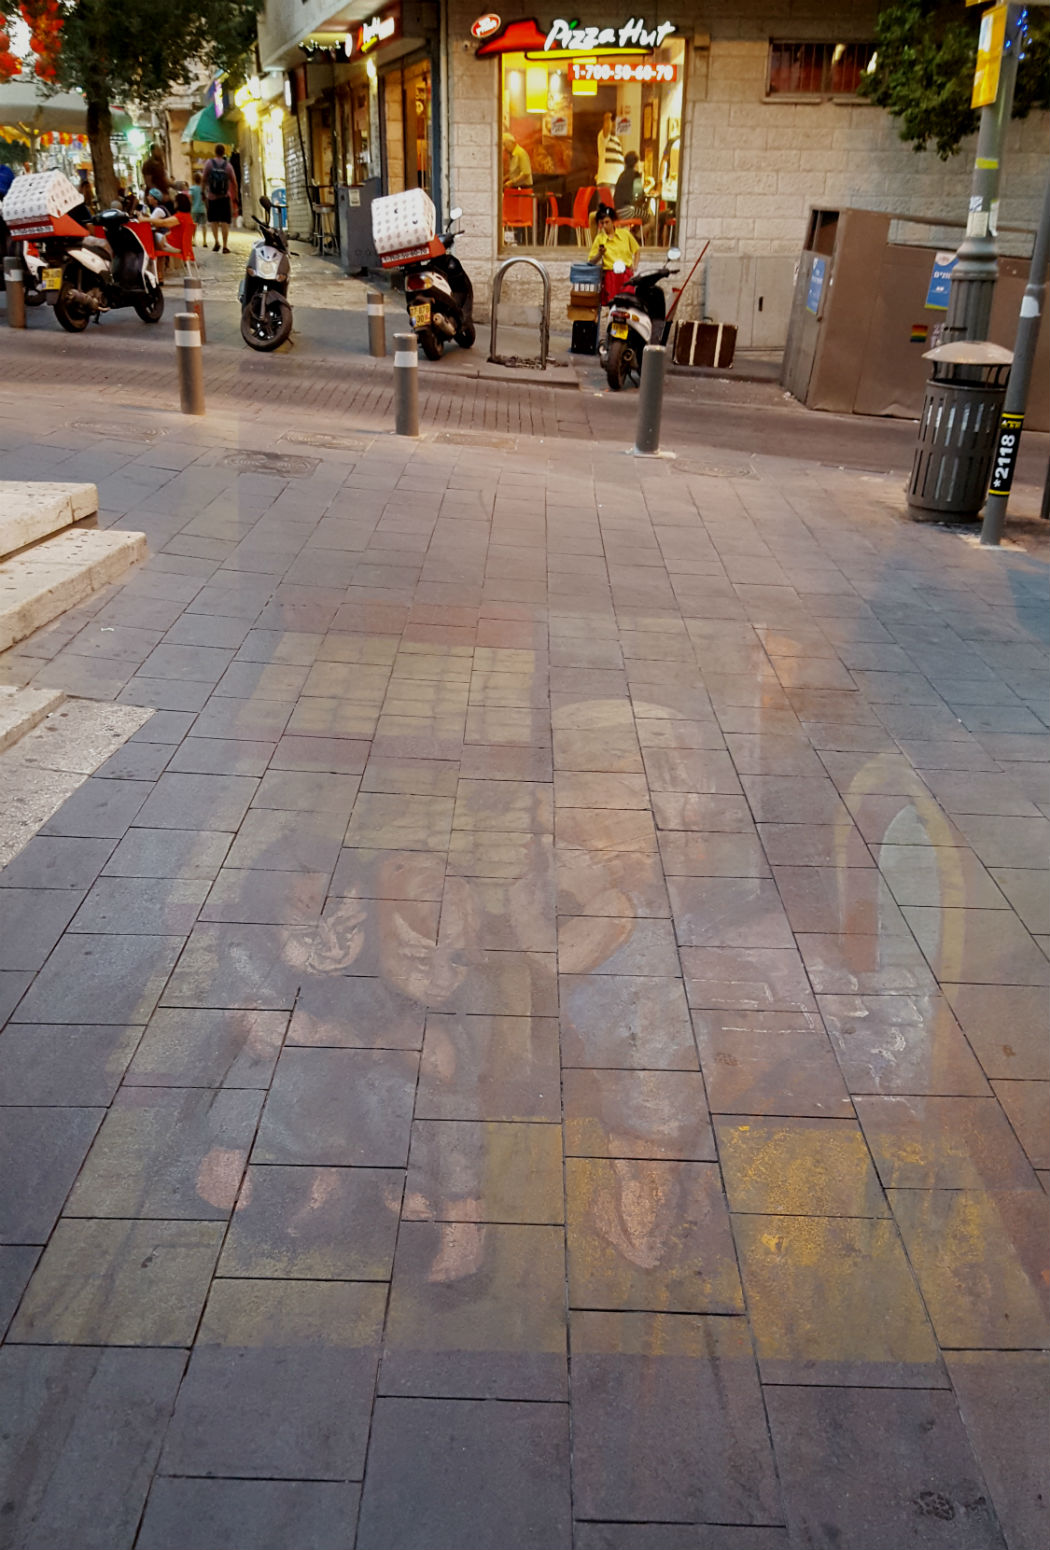 Street art Jerusalem Town Center summer festivals 2016 (3)Ssidewalk chalk drawings